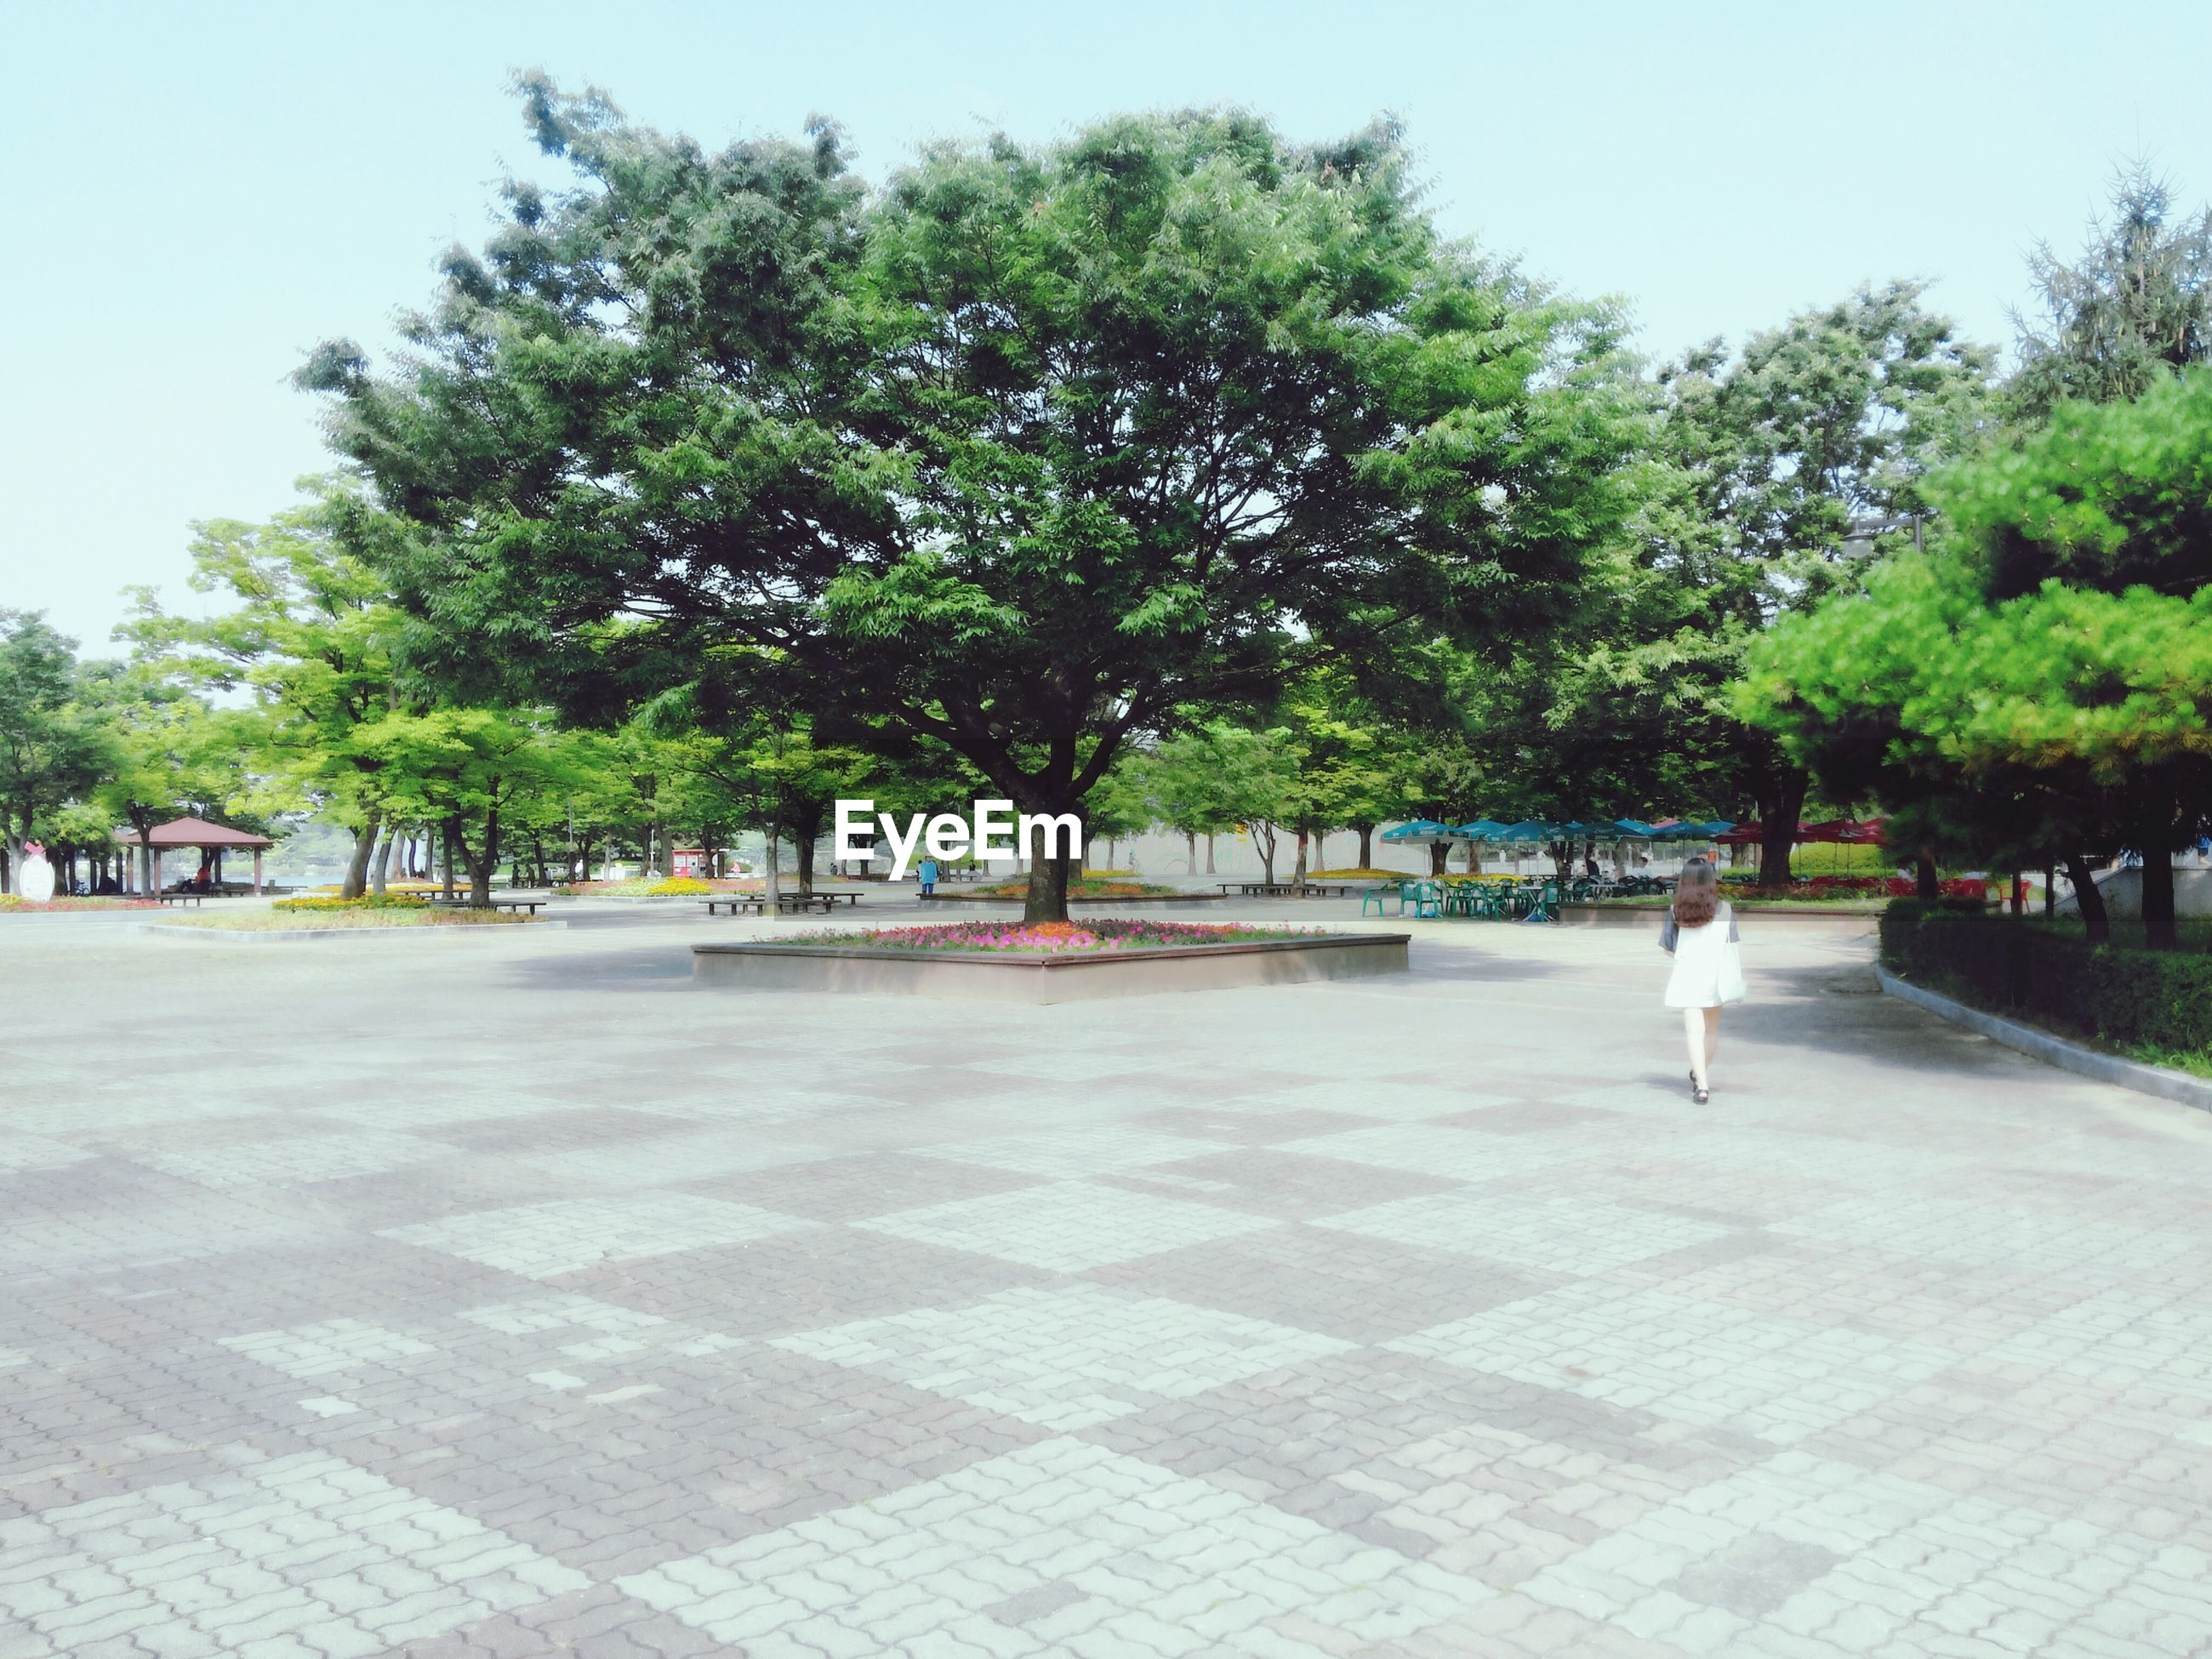 tree, park - man made space, growth, shadow, footpath, sunlight, park, incidental people, green color, clear sky, day, outdoors, nature, walkway, tranquility, person, the way forward, grass, leisure activity